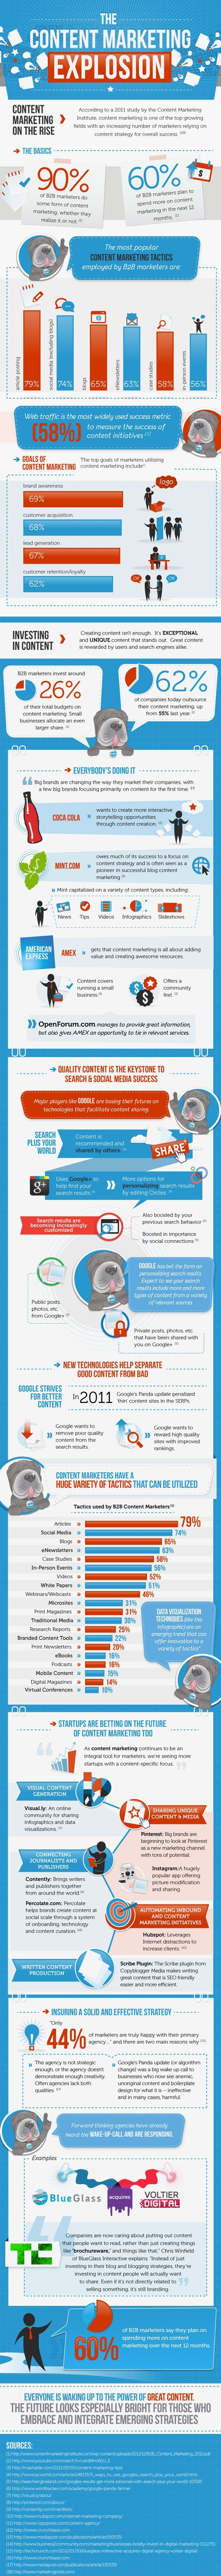 The content marketing explosion & The power of great content #infographic